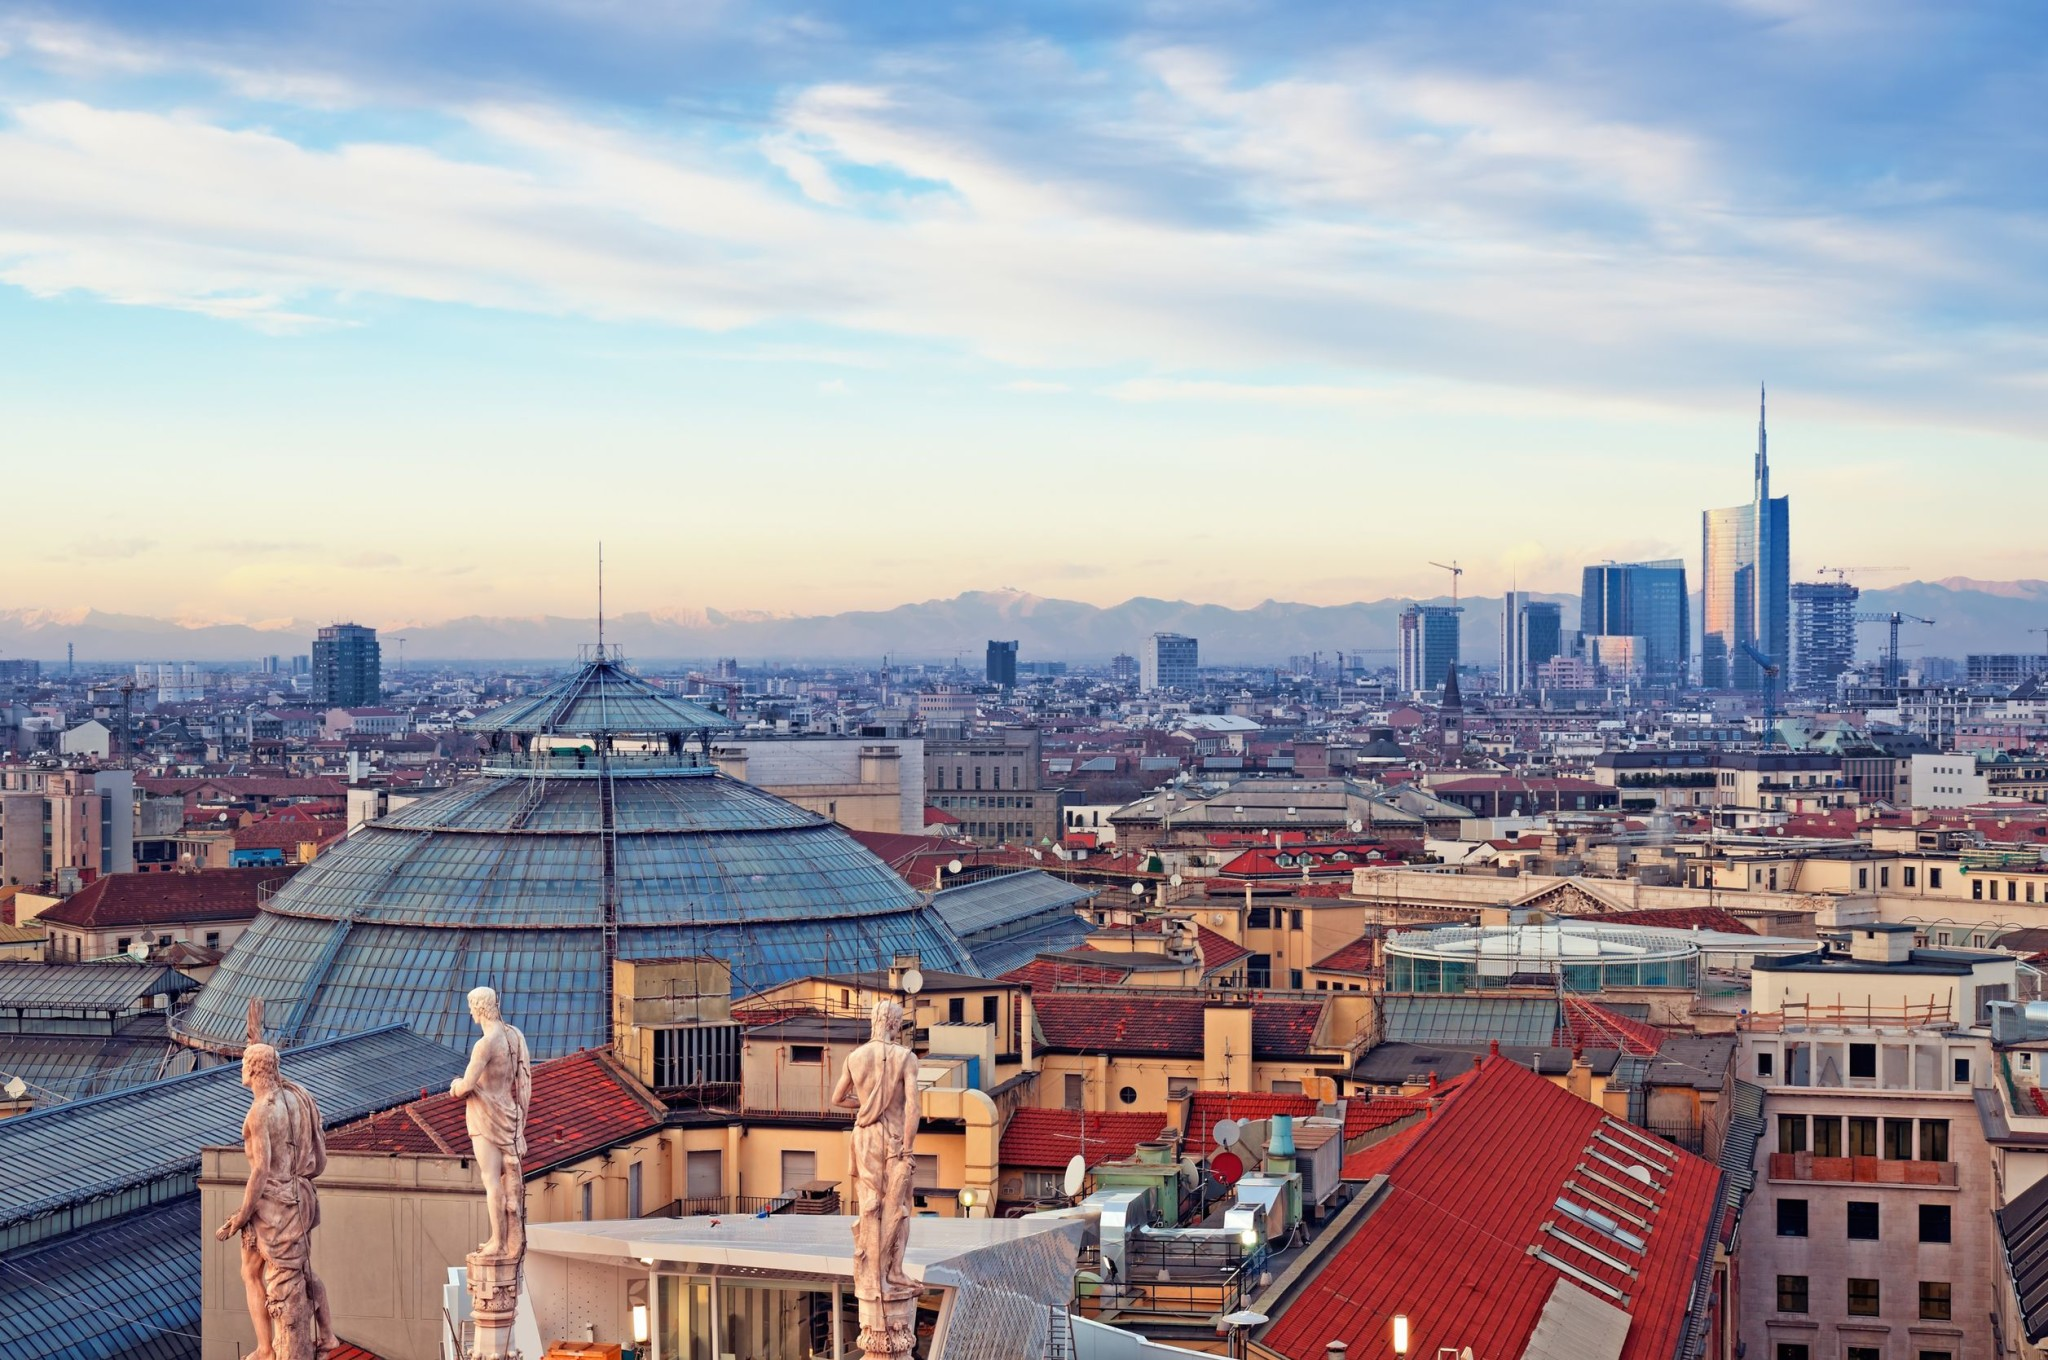 Milan skyline from Milan Cathedral and Duomo di Milano in Italy